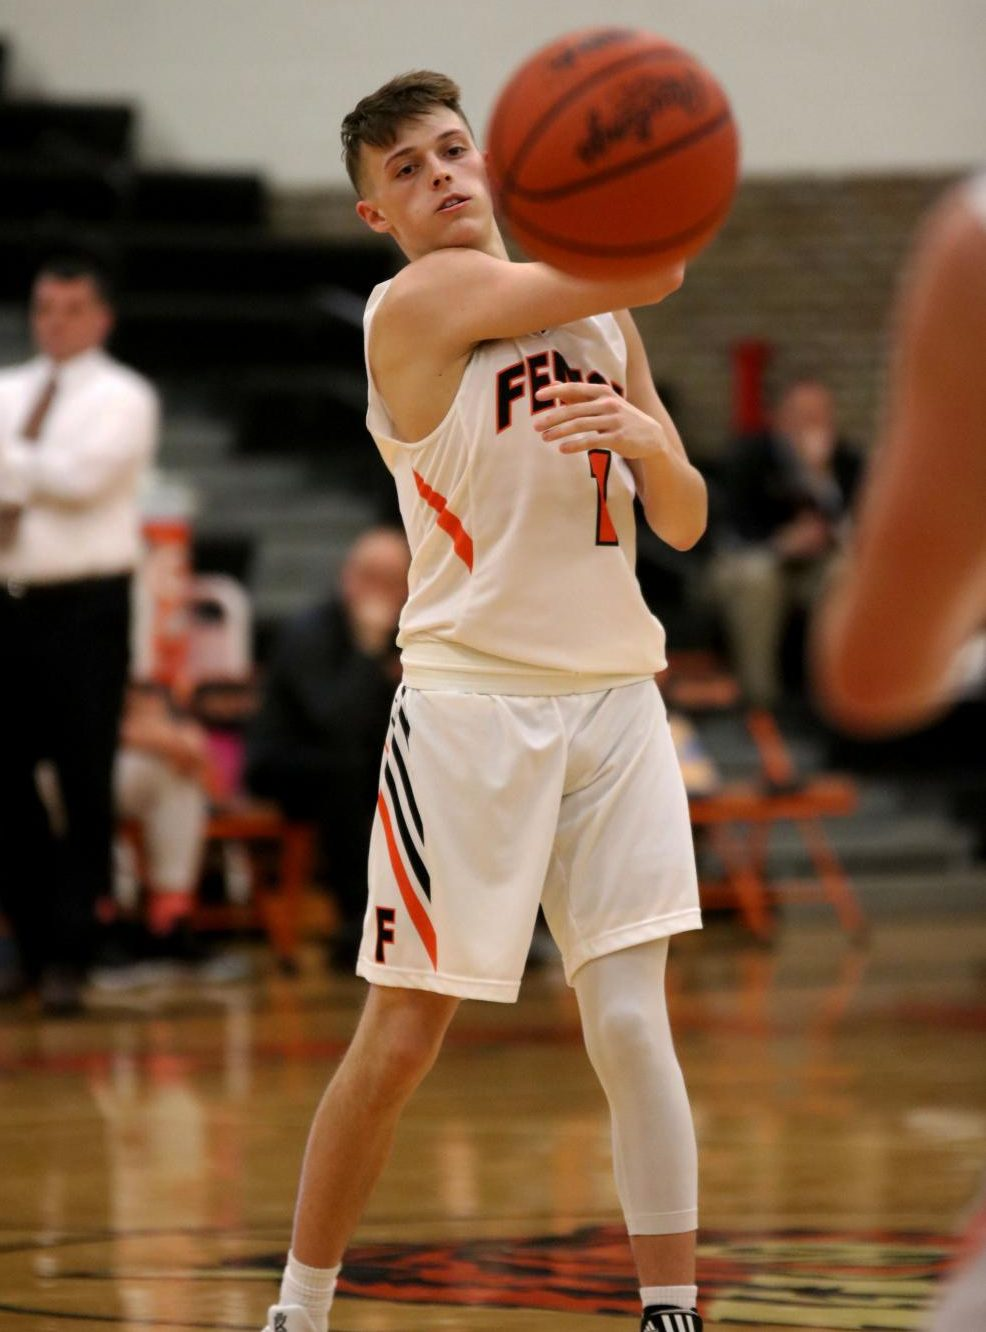 As the boys varsity basketball team plays Owosso, junior Trent DeGayner passes the ball to his teammate. The boys varsity basketball team's last home game is Feb. 22 against Linden.